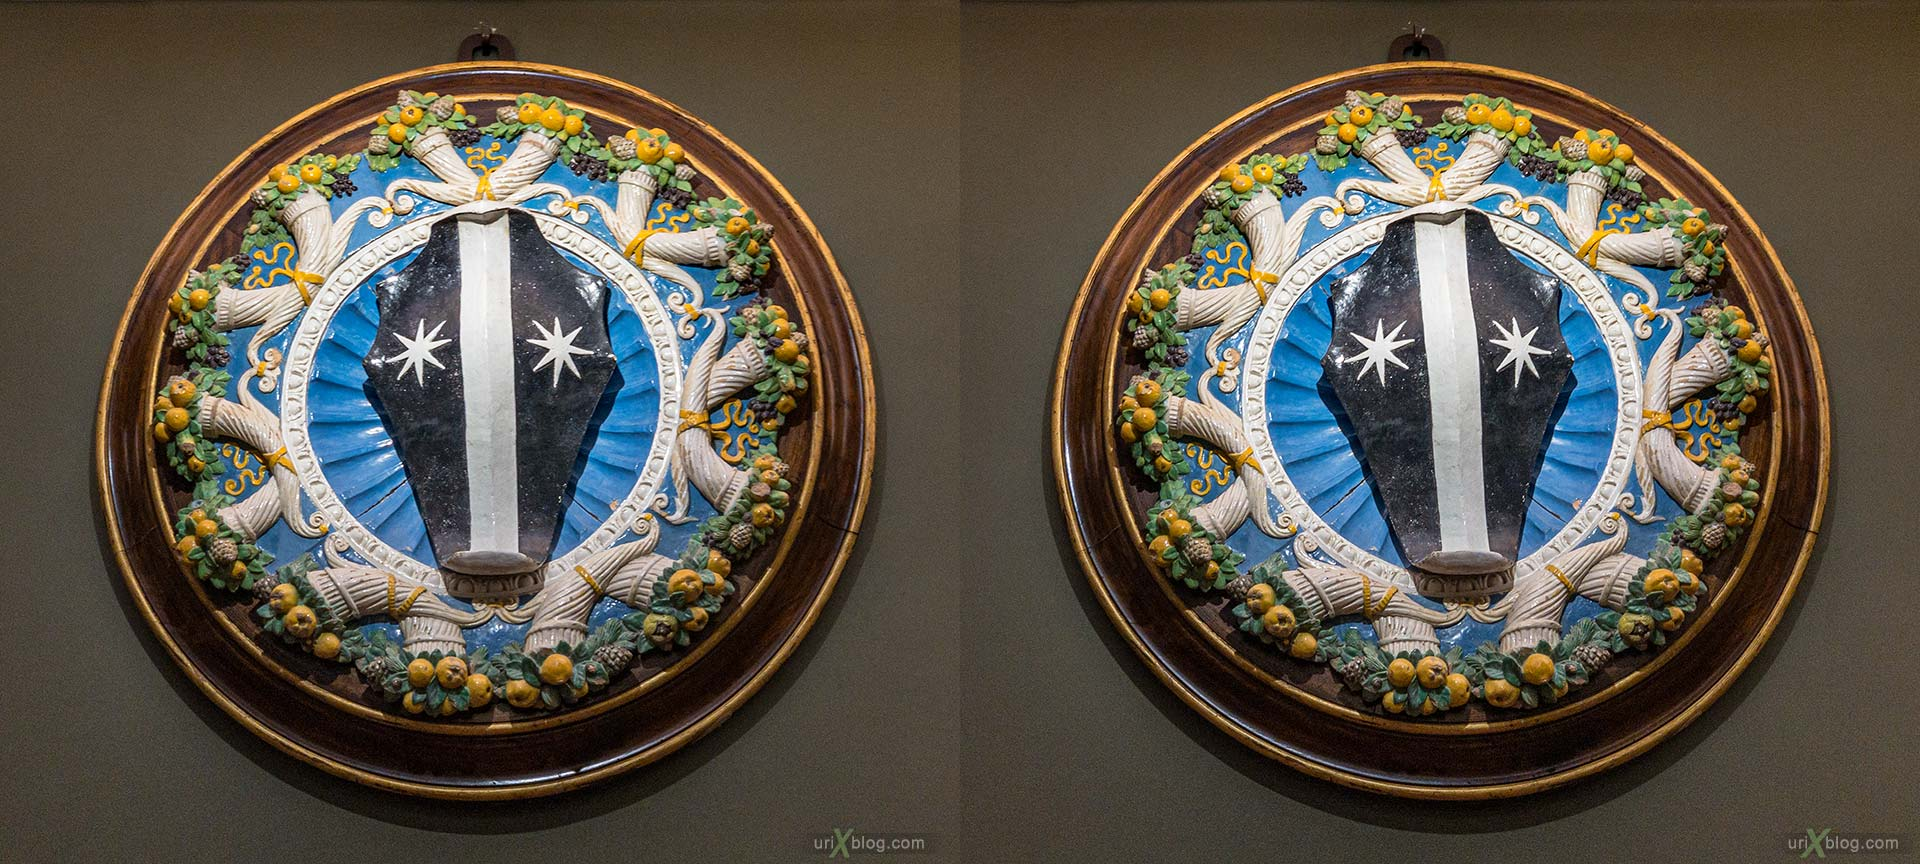 coat of arms, crest, glazed terracotta, tondo, garland, Uffizi Gallery, Contini Bonacossi Collection, Luca della Robbia, Florence, Firenze, Italy, 3D, stereo pair, cross-eyed, crossview, cross view stereo pair, stereoscopic